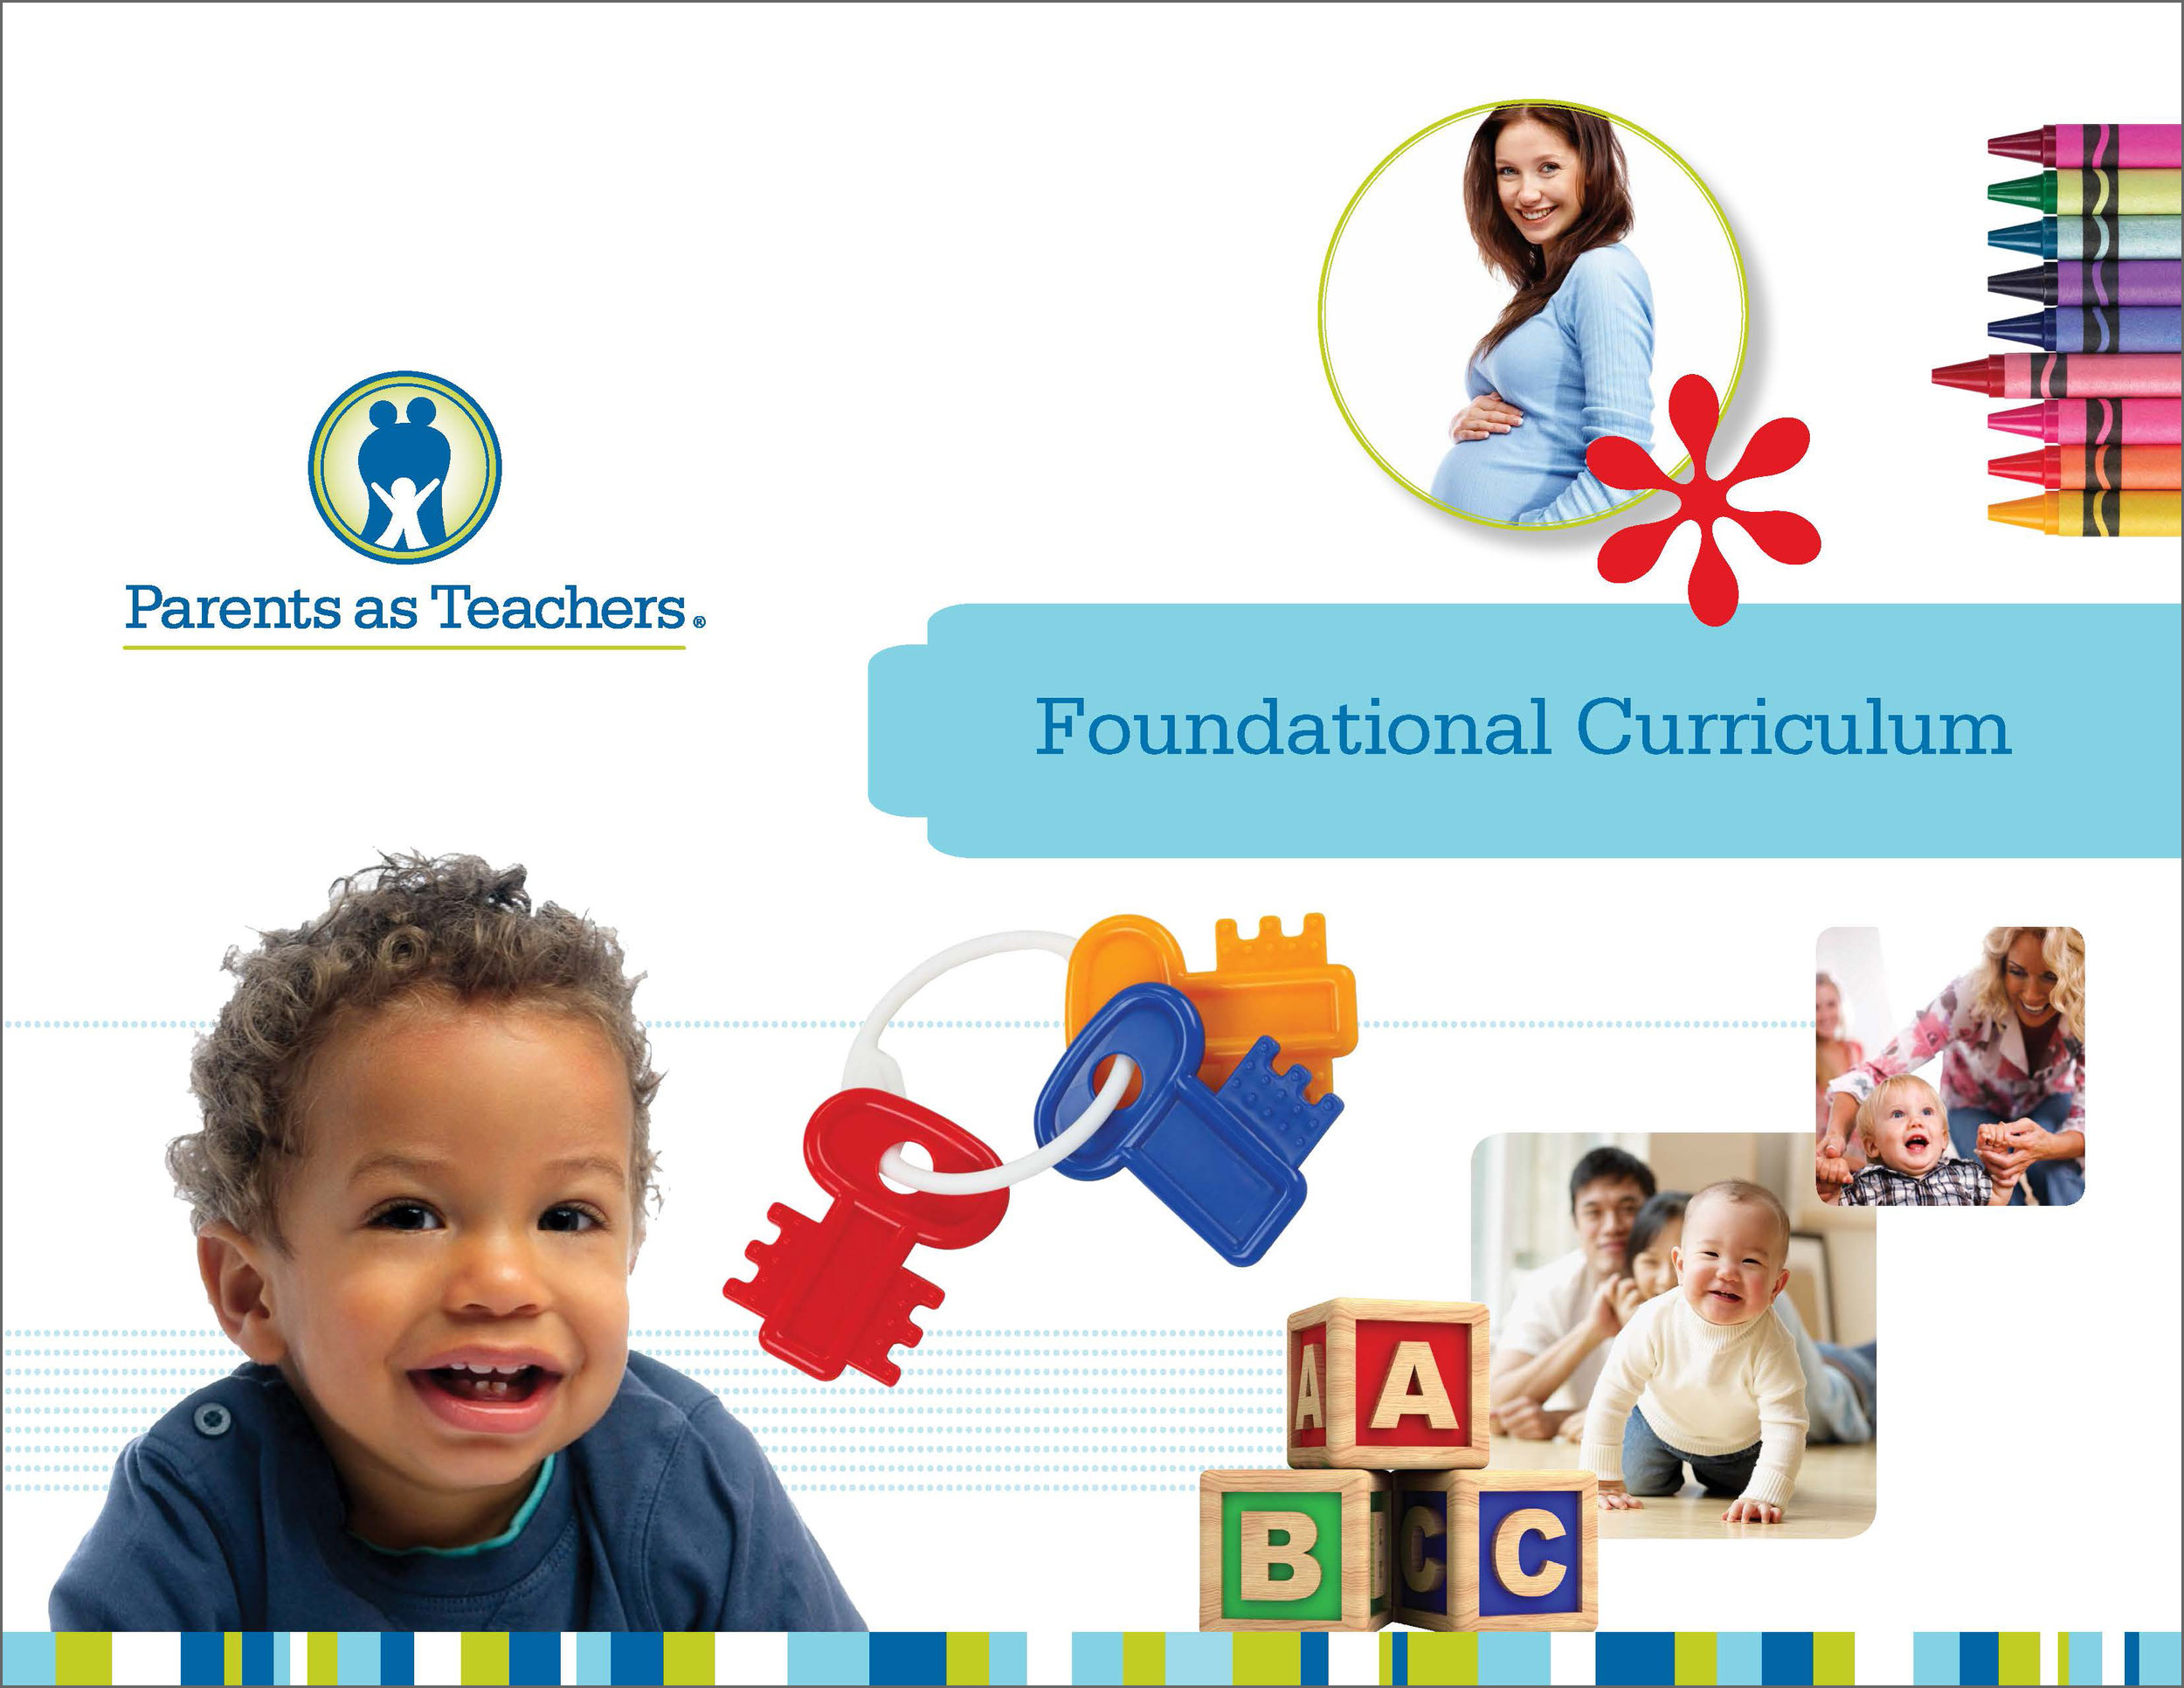 Preview the Foundational Curriculum